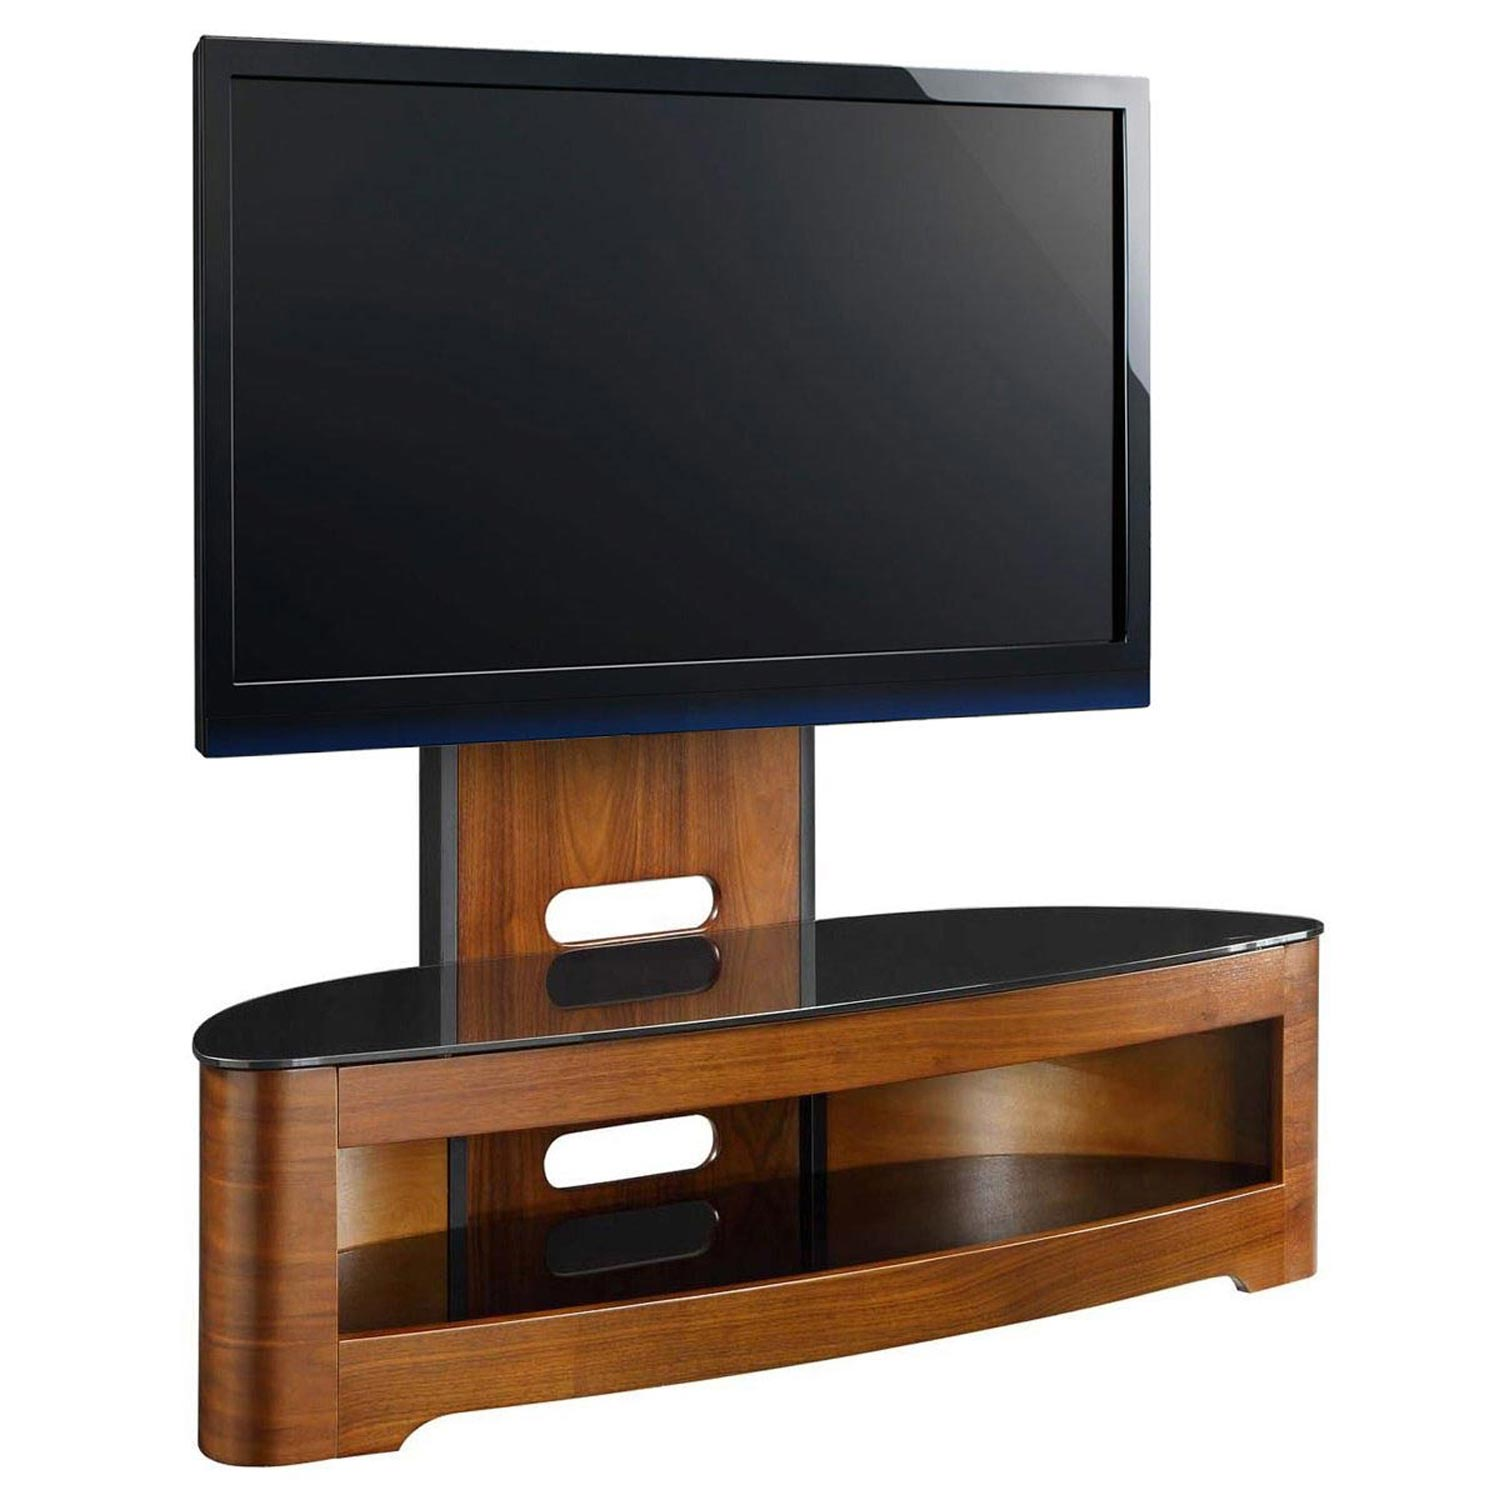 Image of Jual Florence Cantilever TV Stand